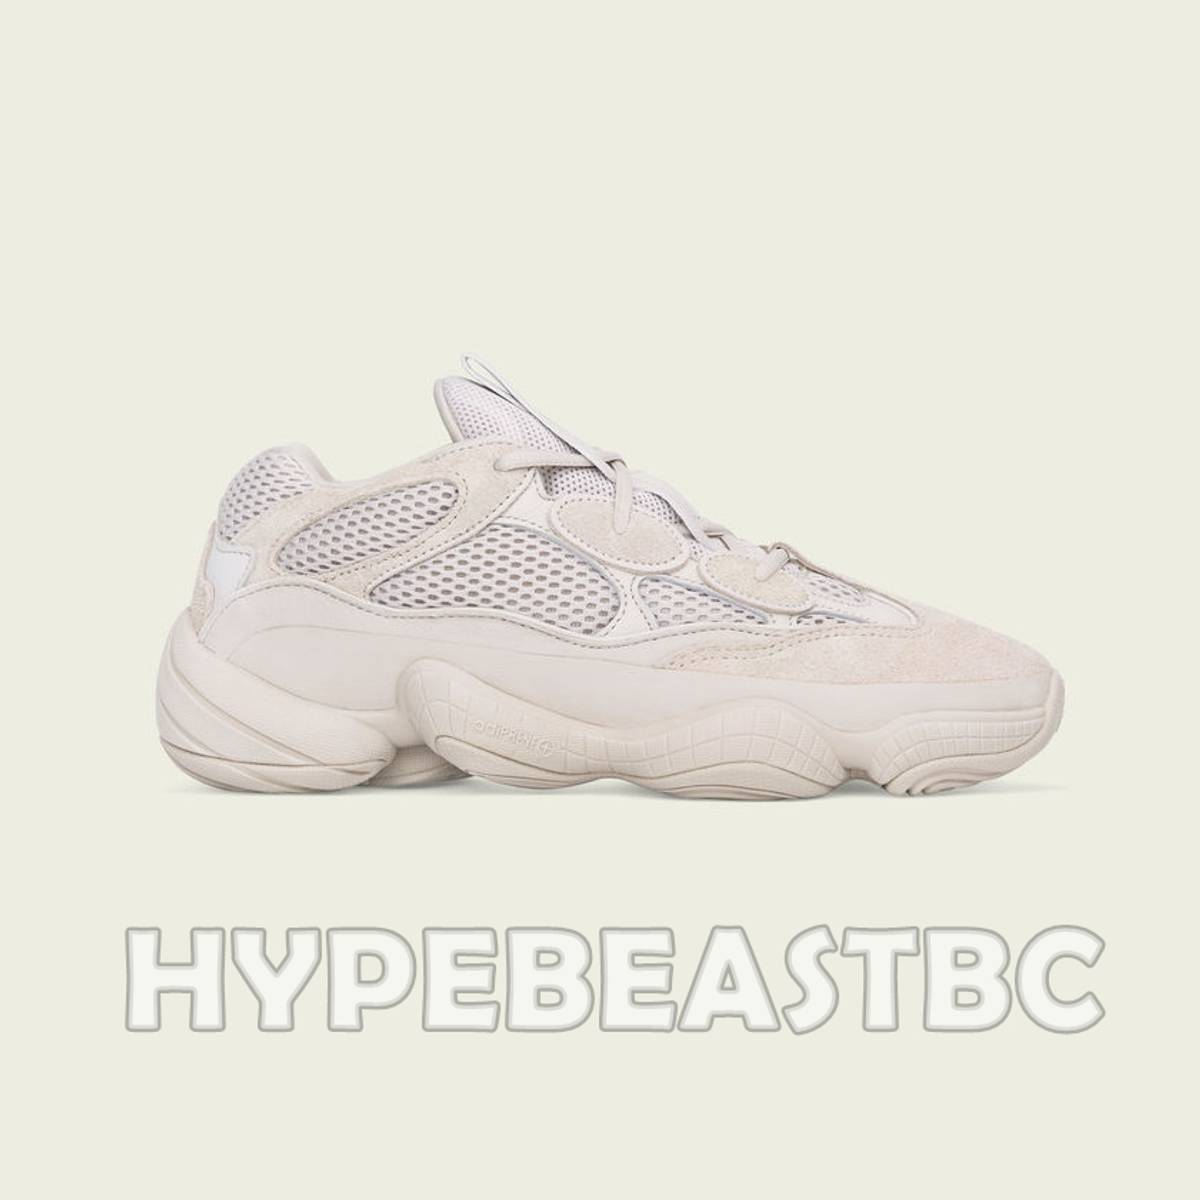 official photos e1f5c 79d9c Adidas Yeezy 500 Blush X Adidas Desert Rat Sneakers Shoes, Beige Size 10  $261